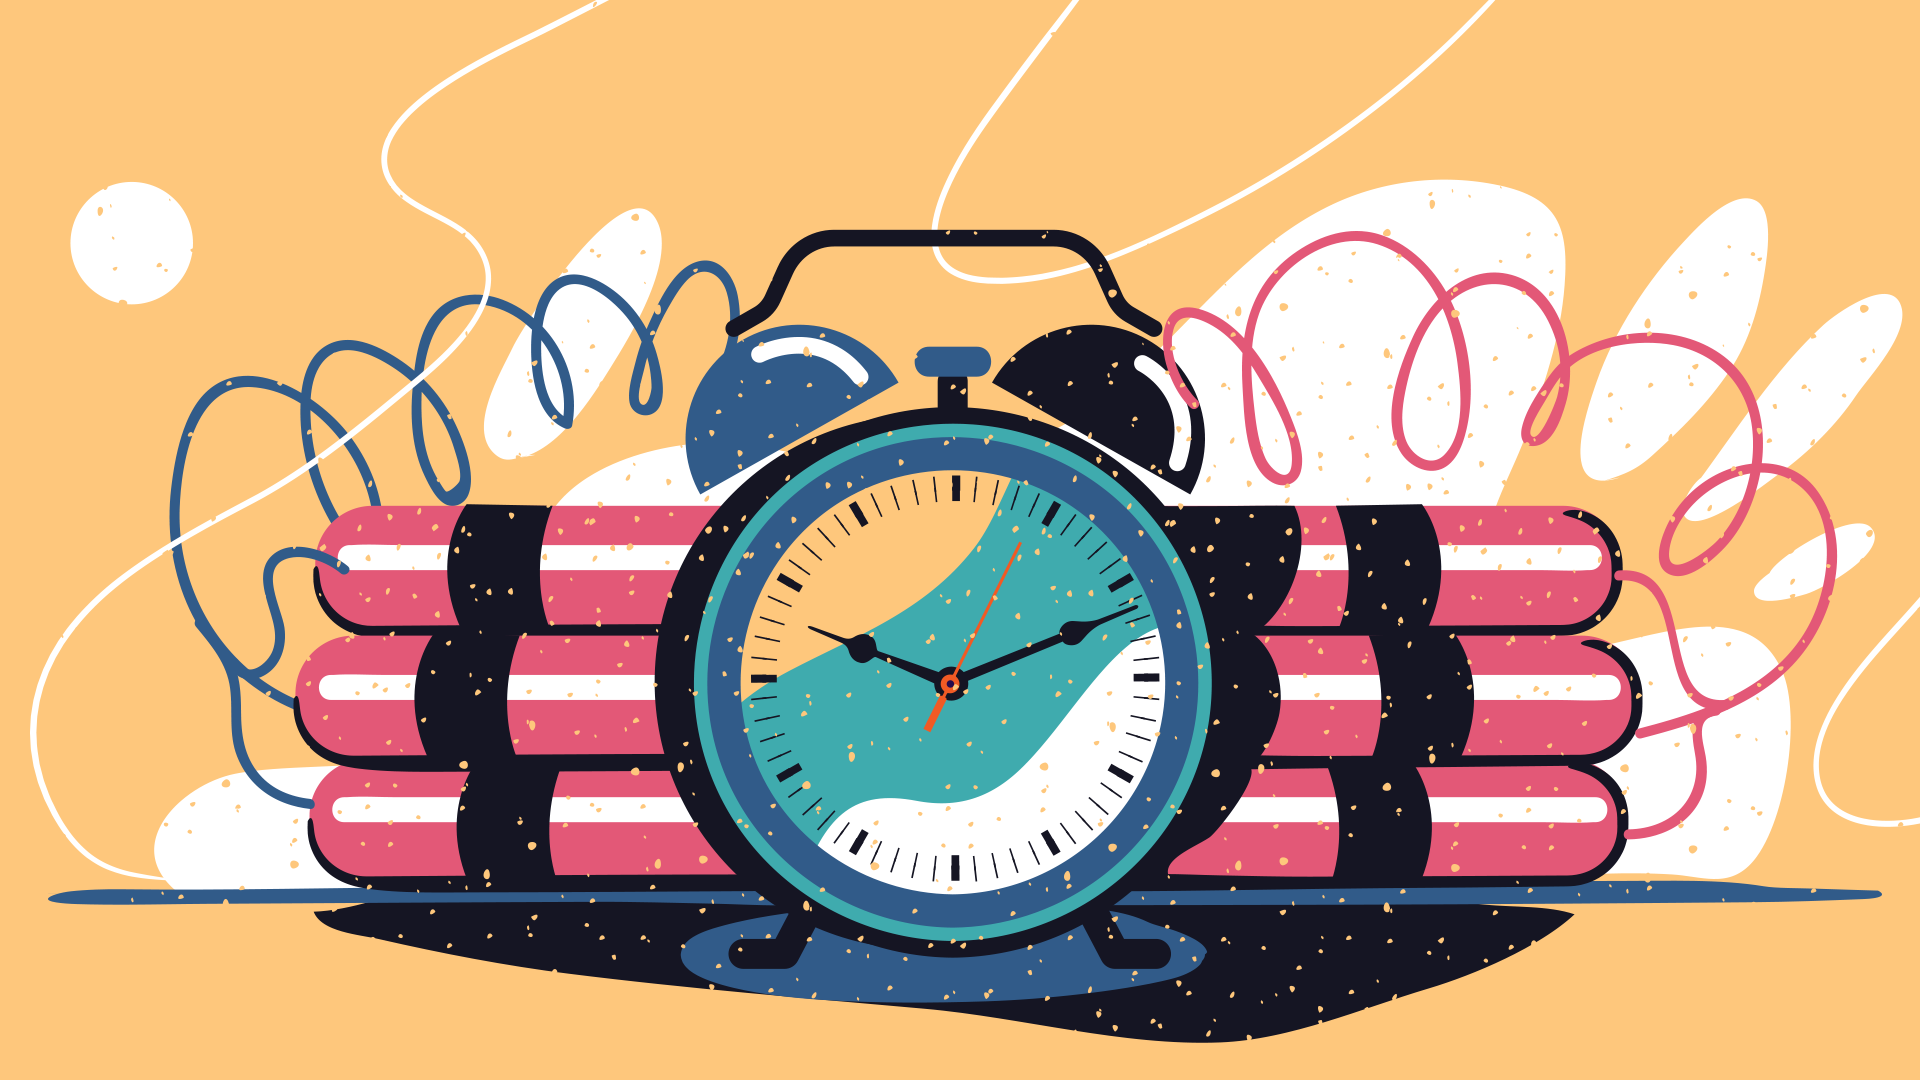 Graphical Illustration Of Time Bomb Illustration Character Illustration Graphic